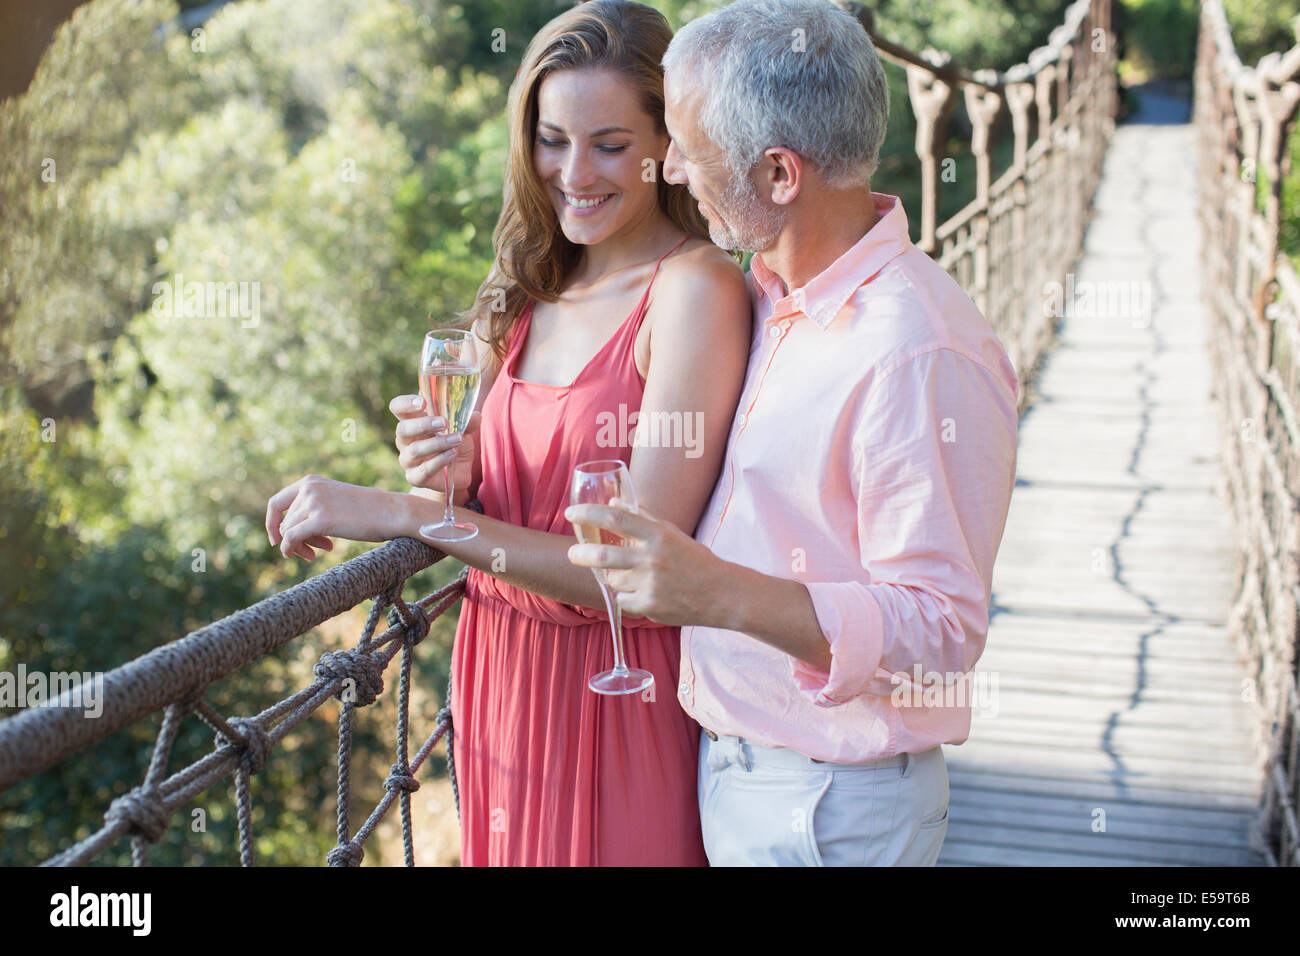 Couple toasting each other on wooden rope bridge - Stock Image